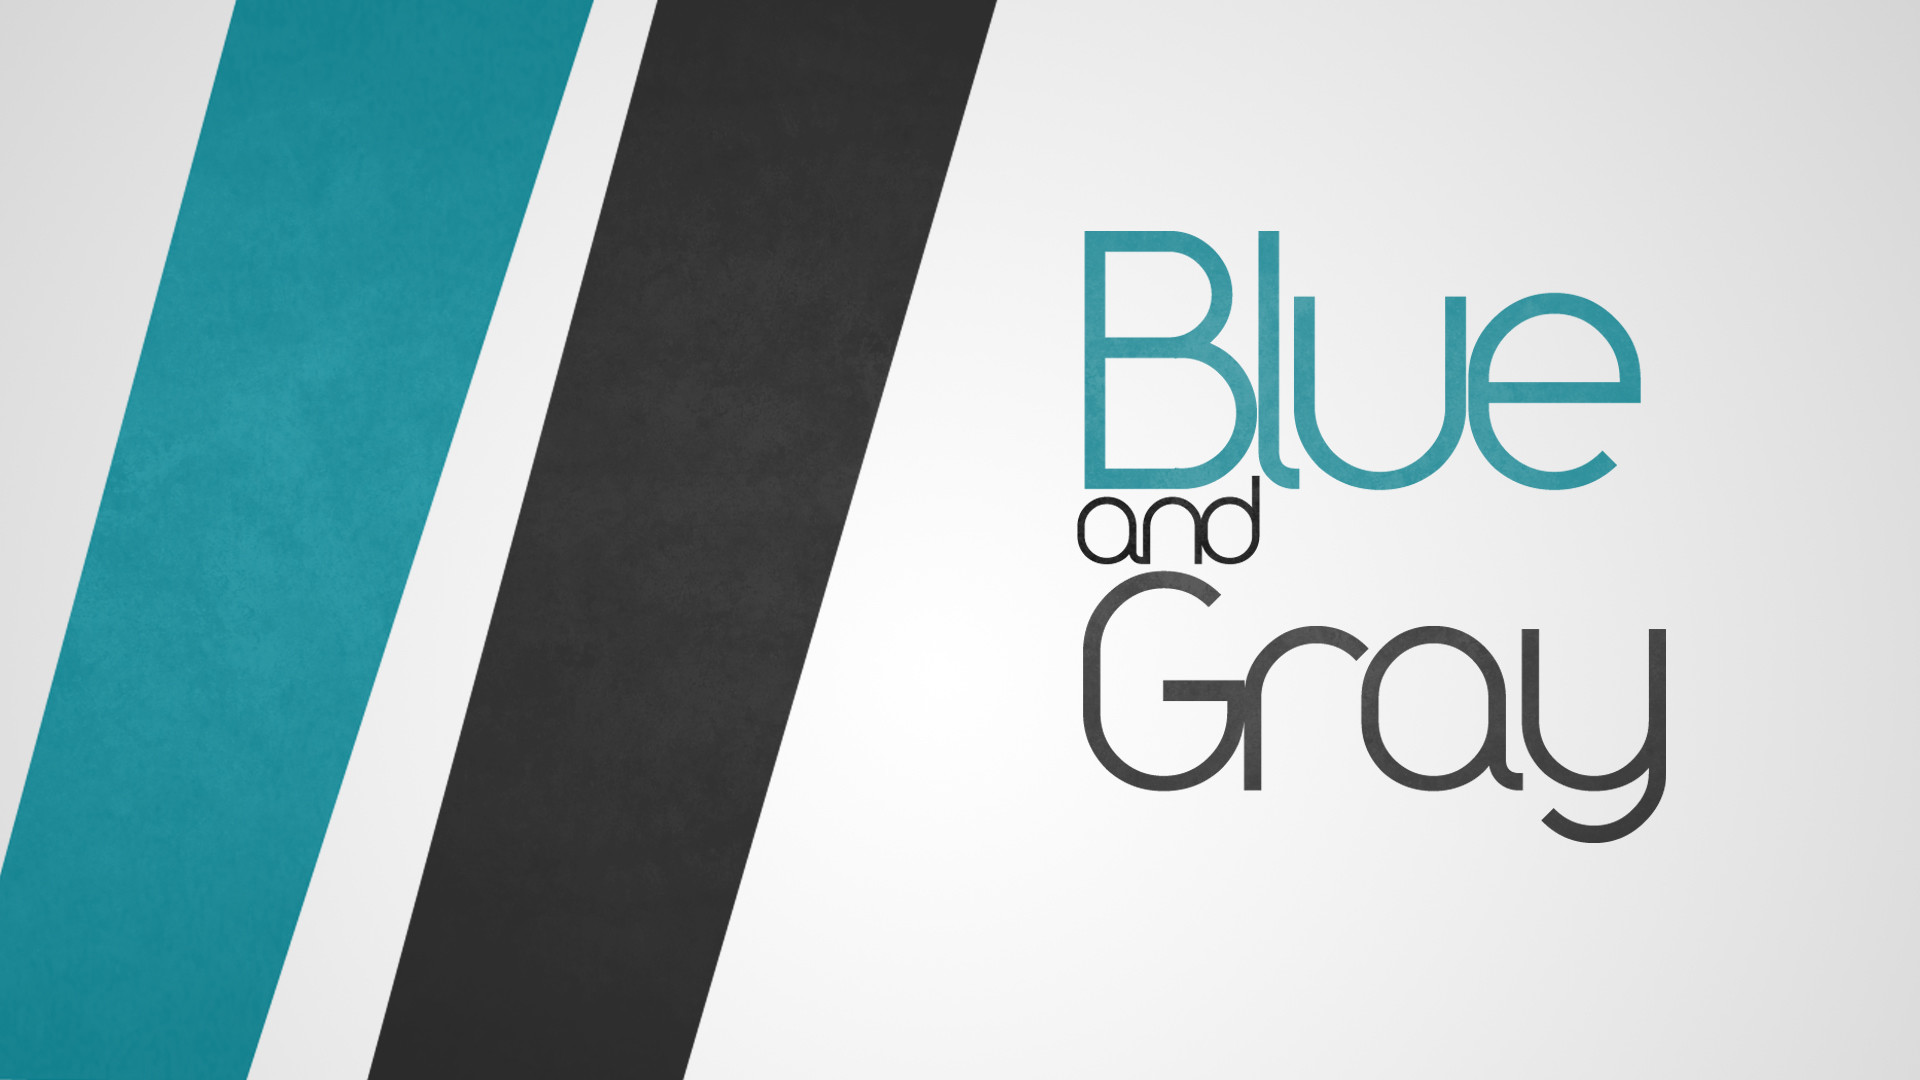 … Wallpaper – Blue and Gray by AlreadyPwNDGFX